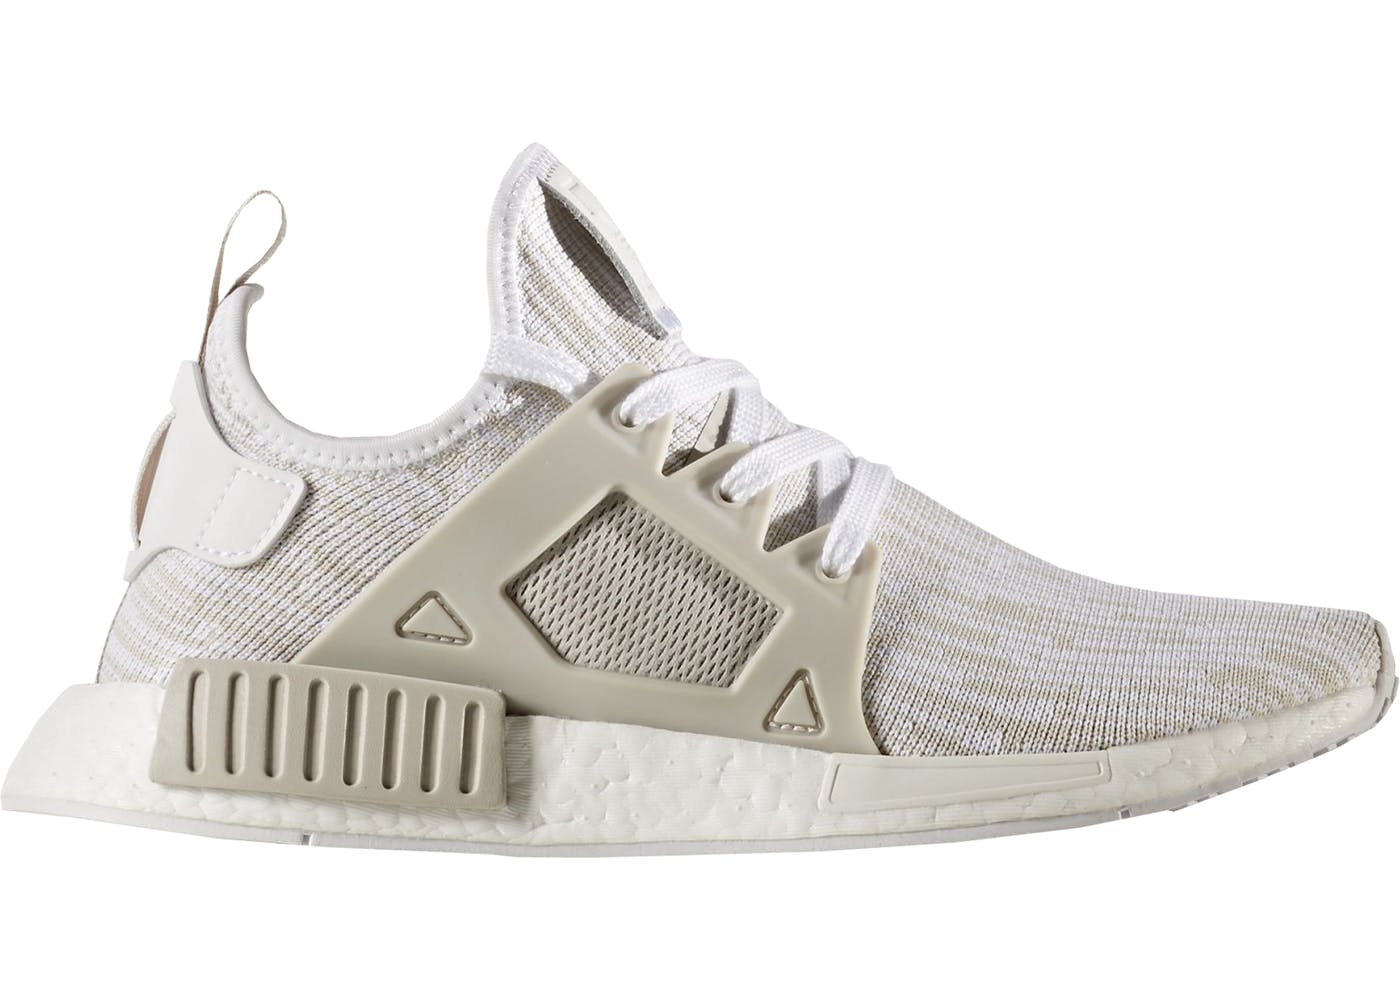 Cheap Adidas NMD XR1 Primeknit 'Glitch White/Core Black' Sale Links